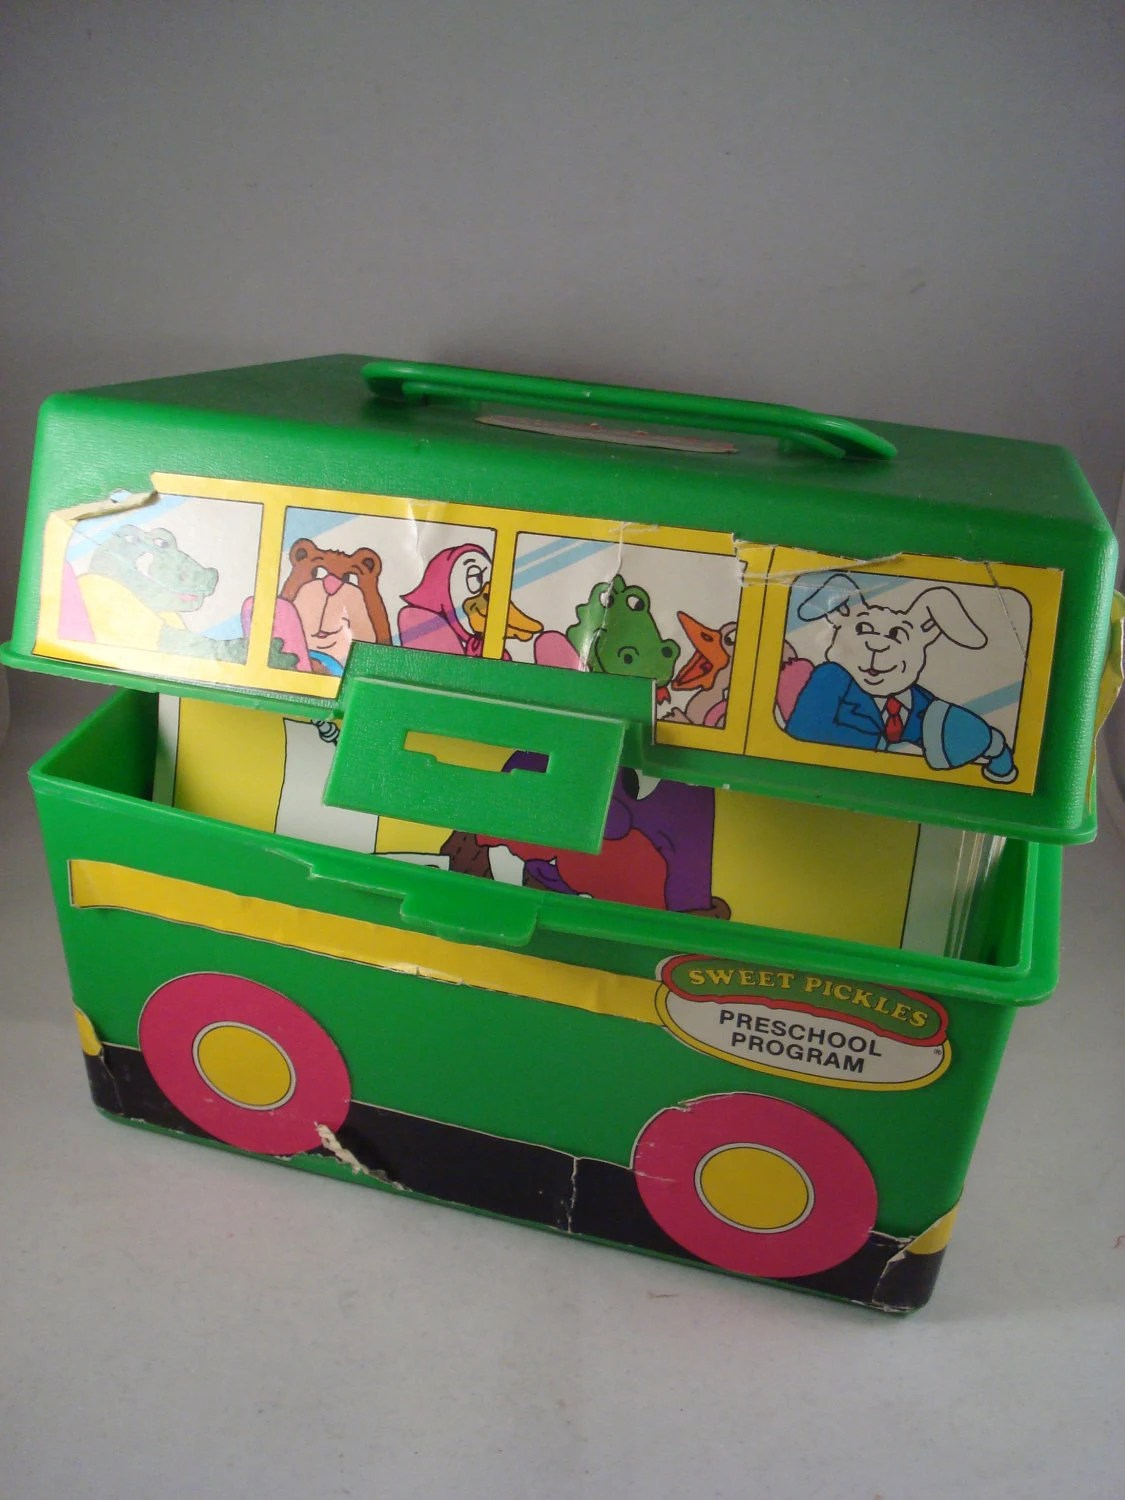 Rare Vintage Sweet Pickles School Bus Preschool Program